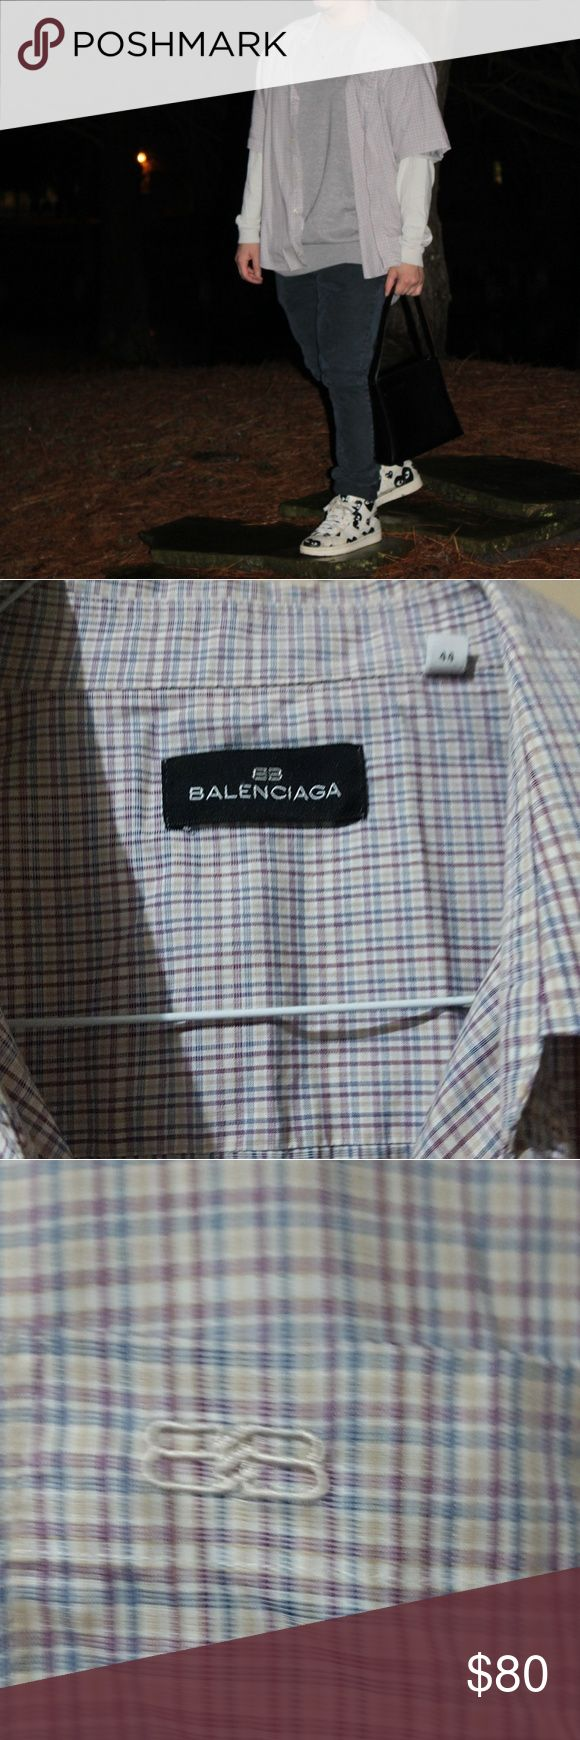 BALENCIAGA plaid button up 100% authauthentic men's size L  Great condition no tears or holes  Amazing quality very comfy and perfect for layering  Smoke free home   #saksfifth #neiman marcus #ferragamo #versace #gucci #vlone #burberry #rick owens #raf simons #off white #virgil abloh #yohji yamamoto #palace #supreme #a bathing ape #bape #louis vuitton #Christian louboutin #giuseppe zanotti #fear of god #yeezy #kanye West Balenciaga Shirts Casual Button Down Shirts